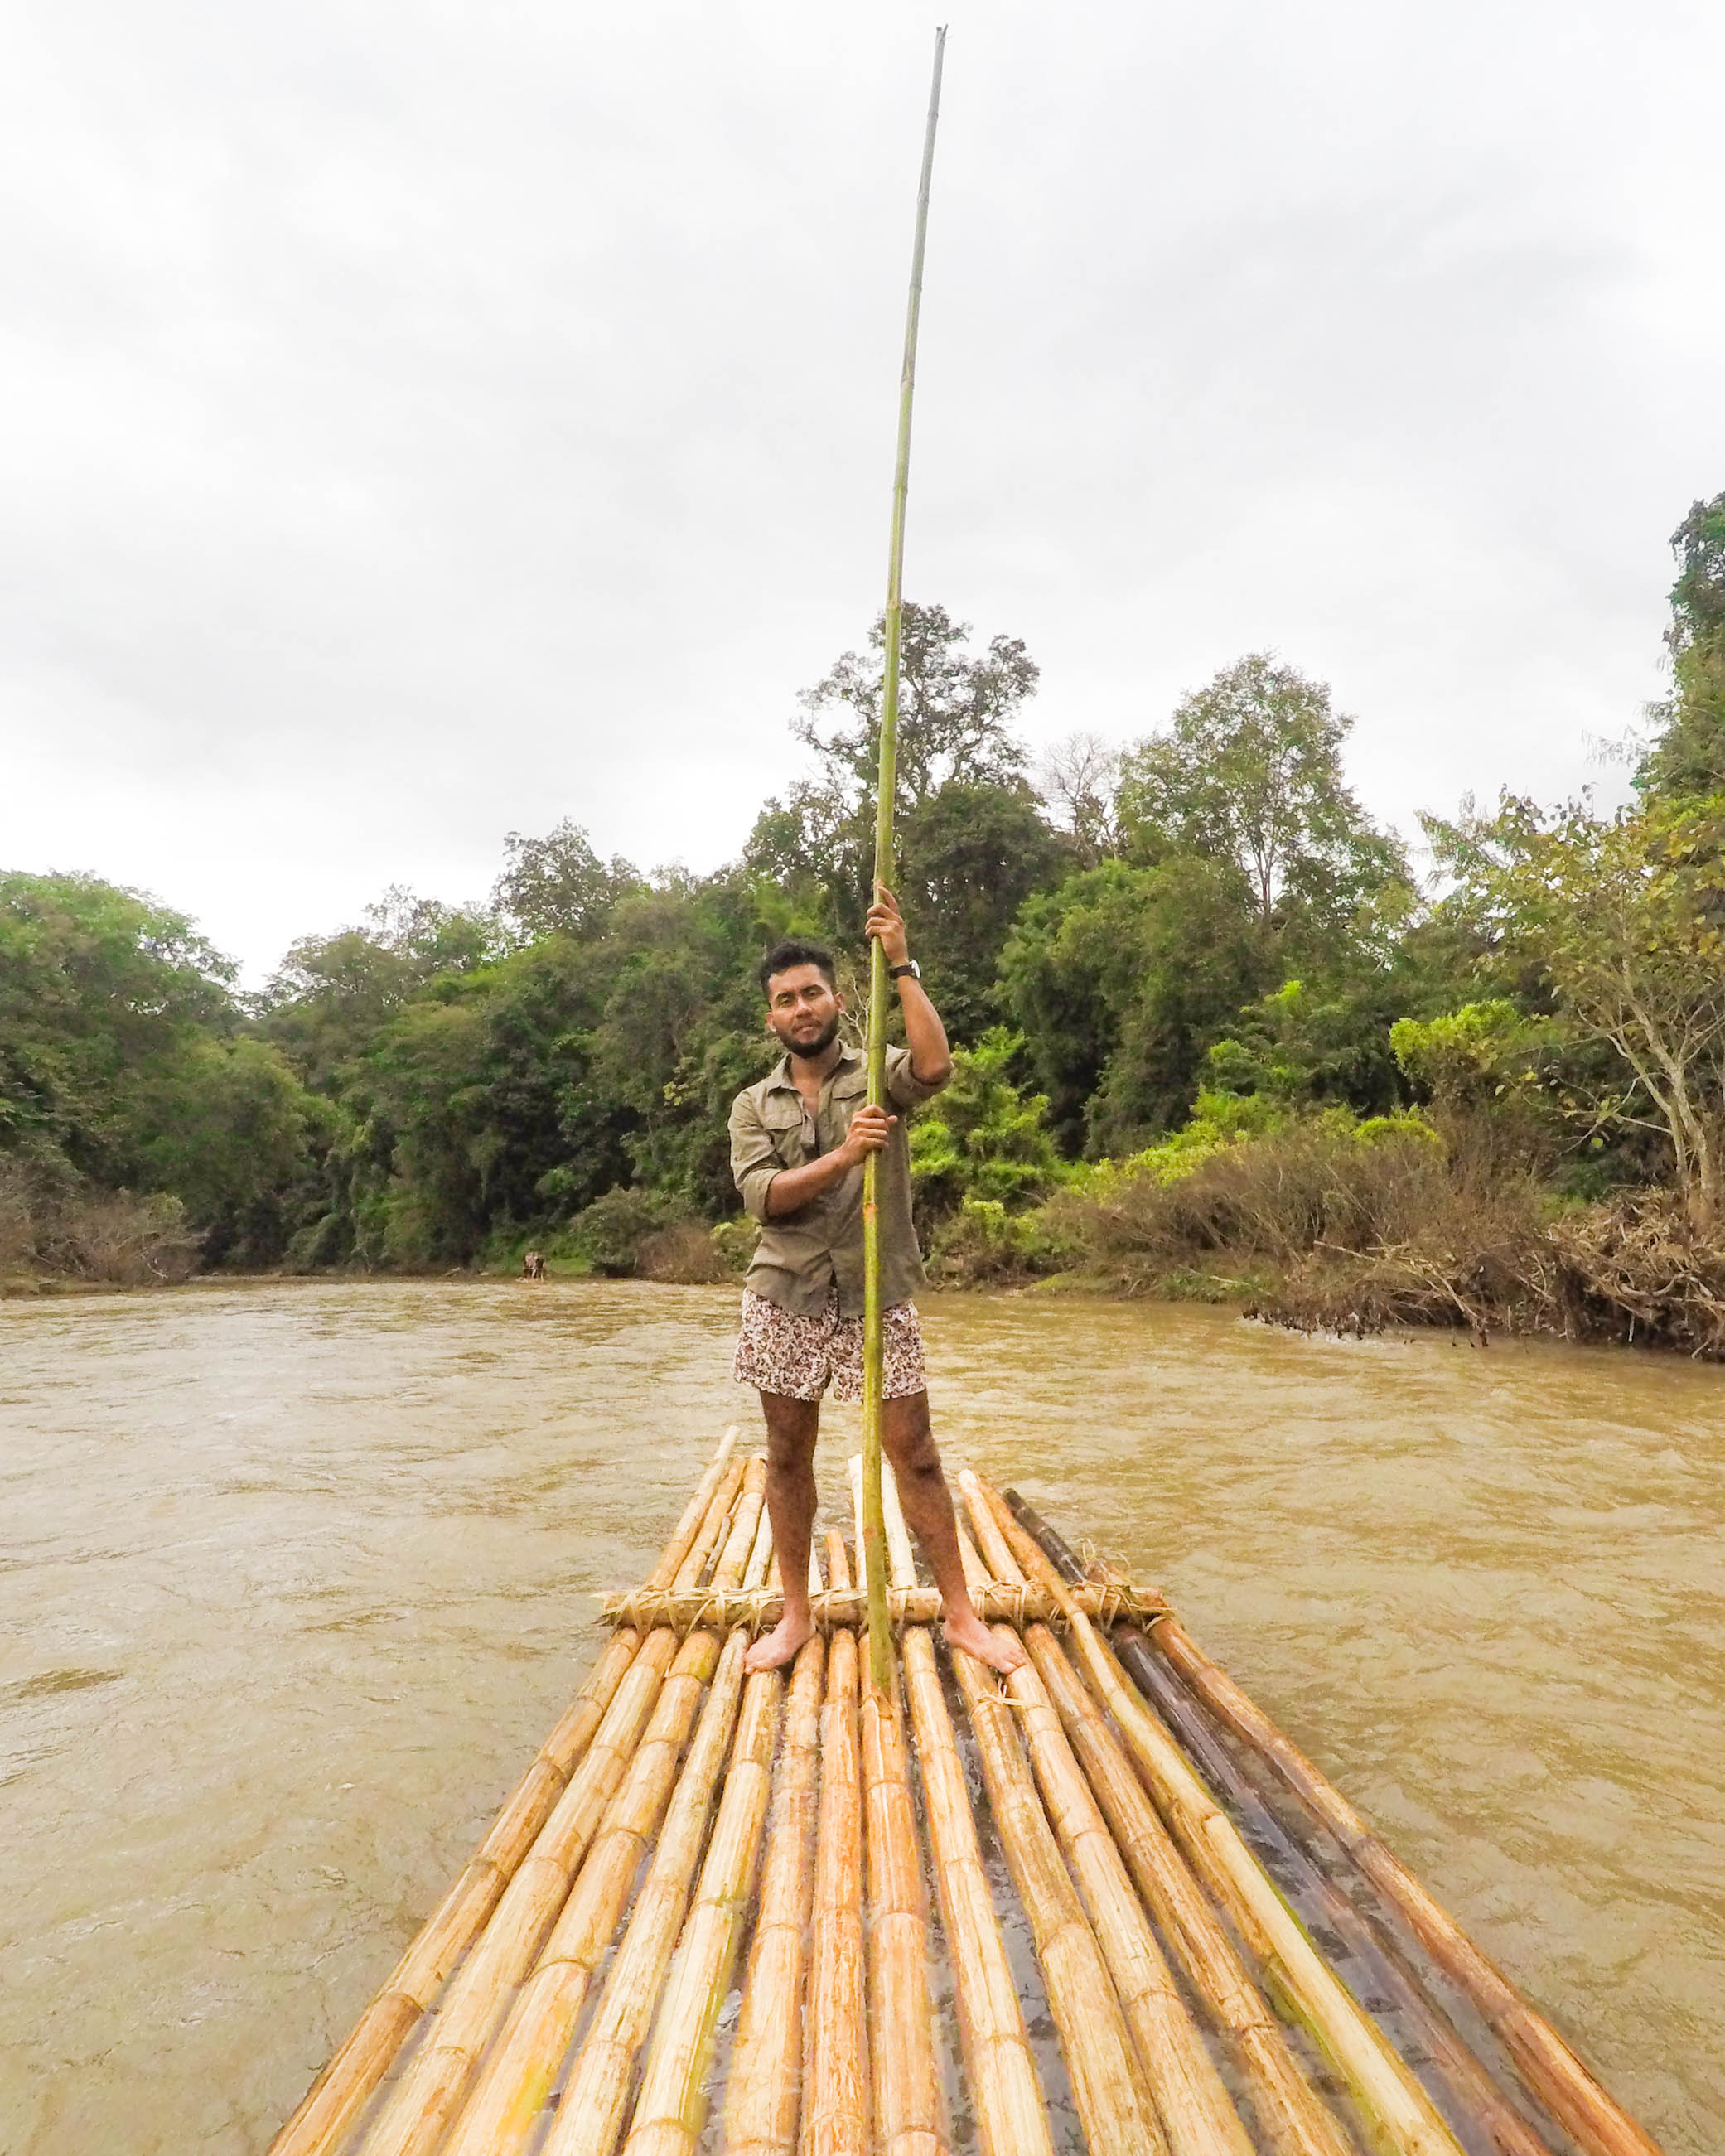 Luis brings up the back steering of the bamboo raft with a large stick